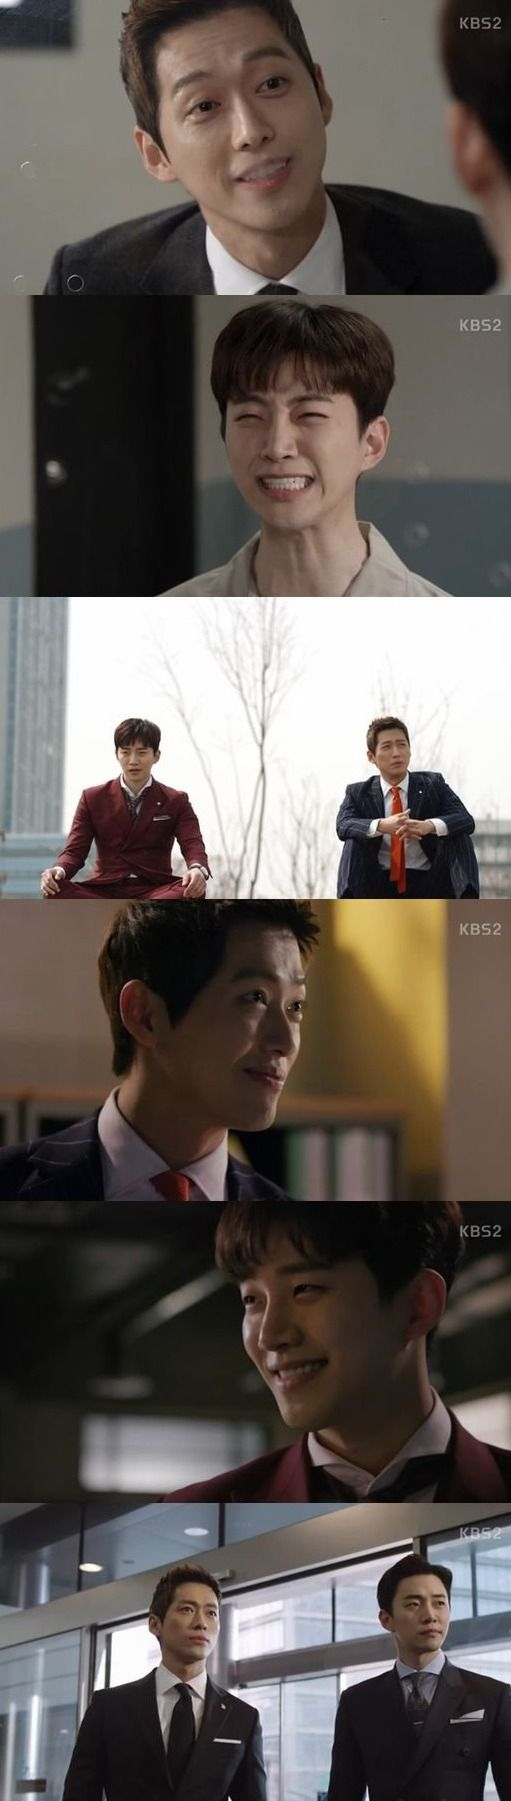 Added episode 18 captures for the Korean drama 'Chief Kim'.